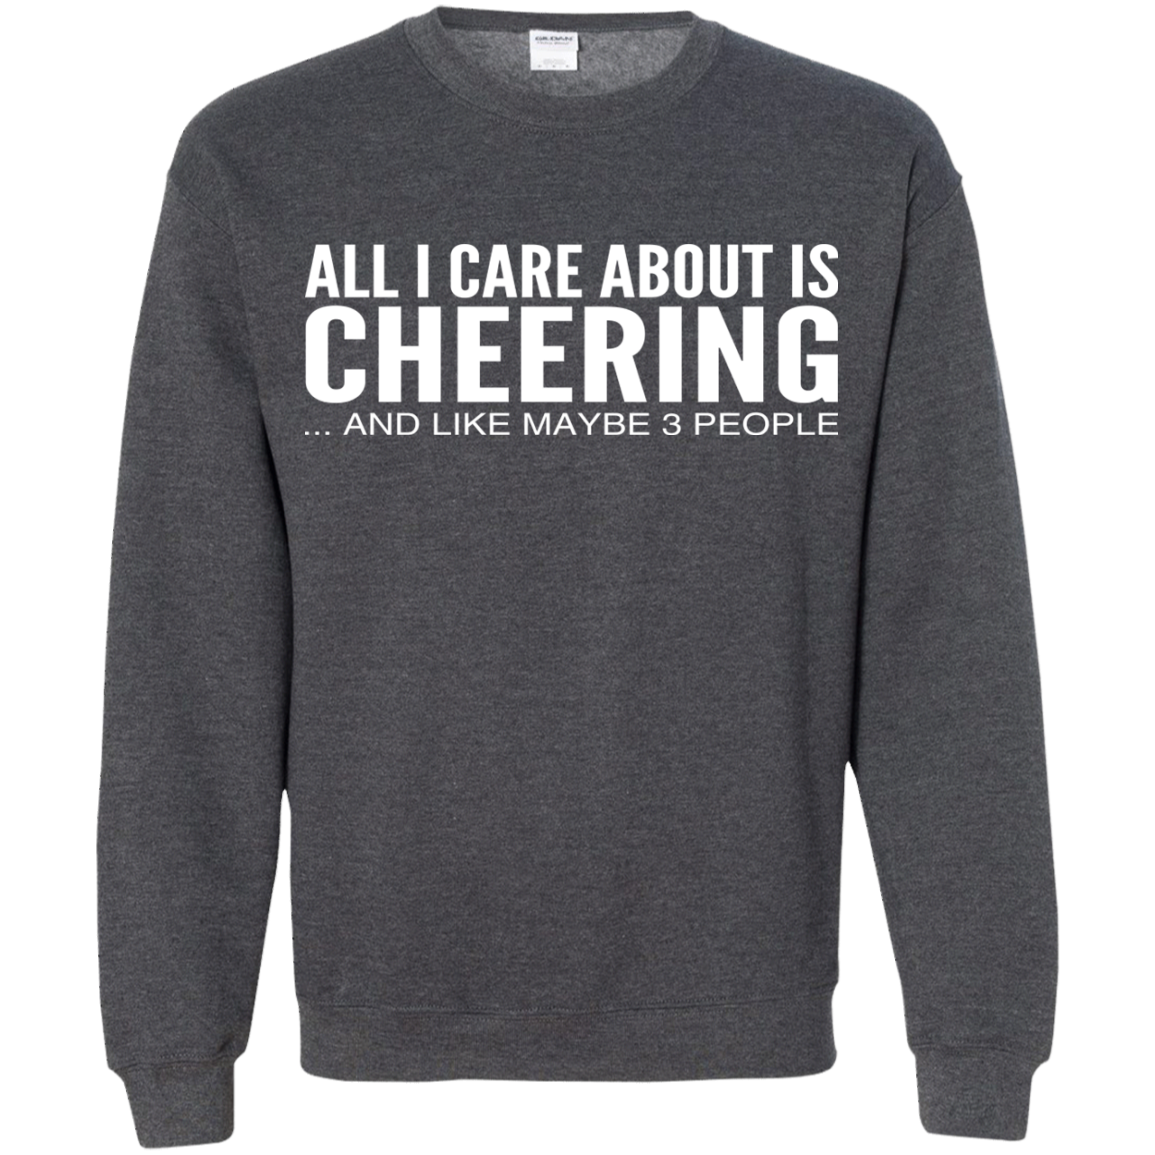 All I Care About Is Cheering And Like Maybe 3 People Sweatshirts